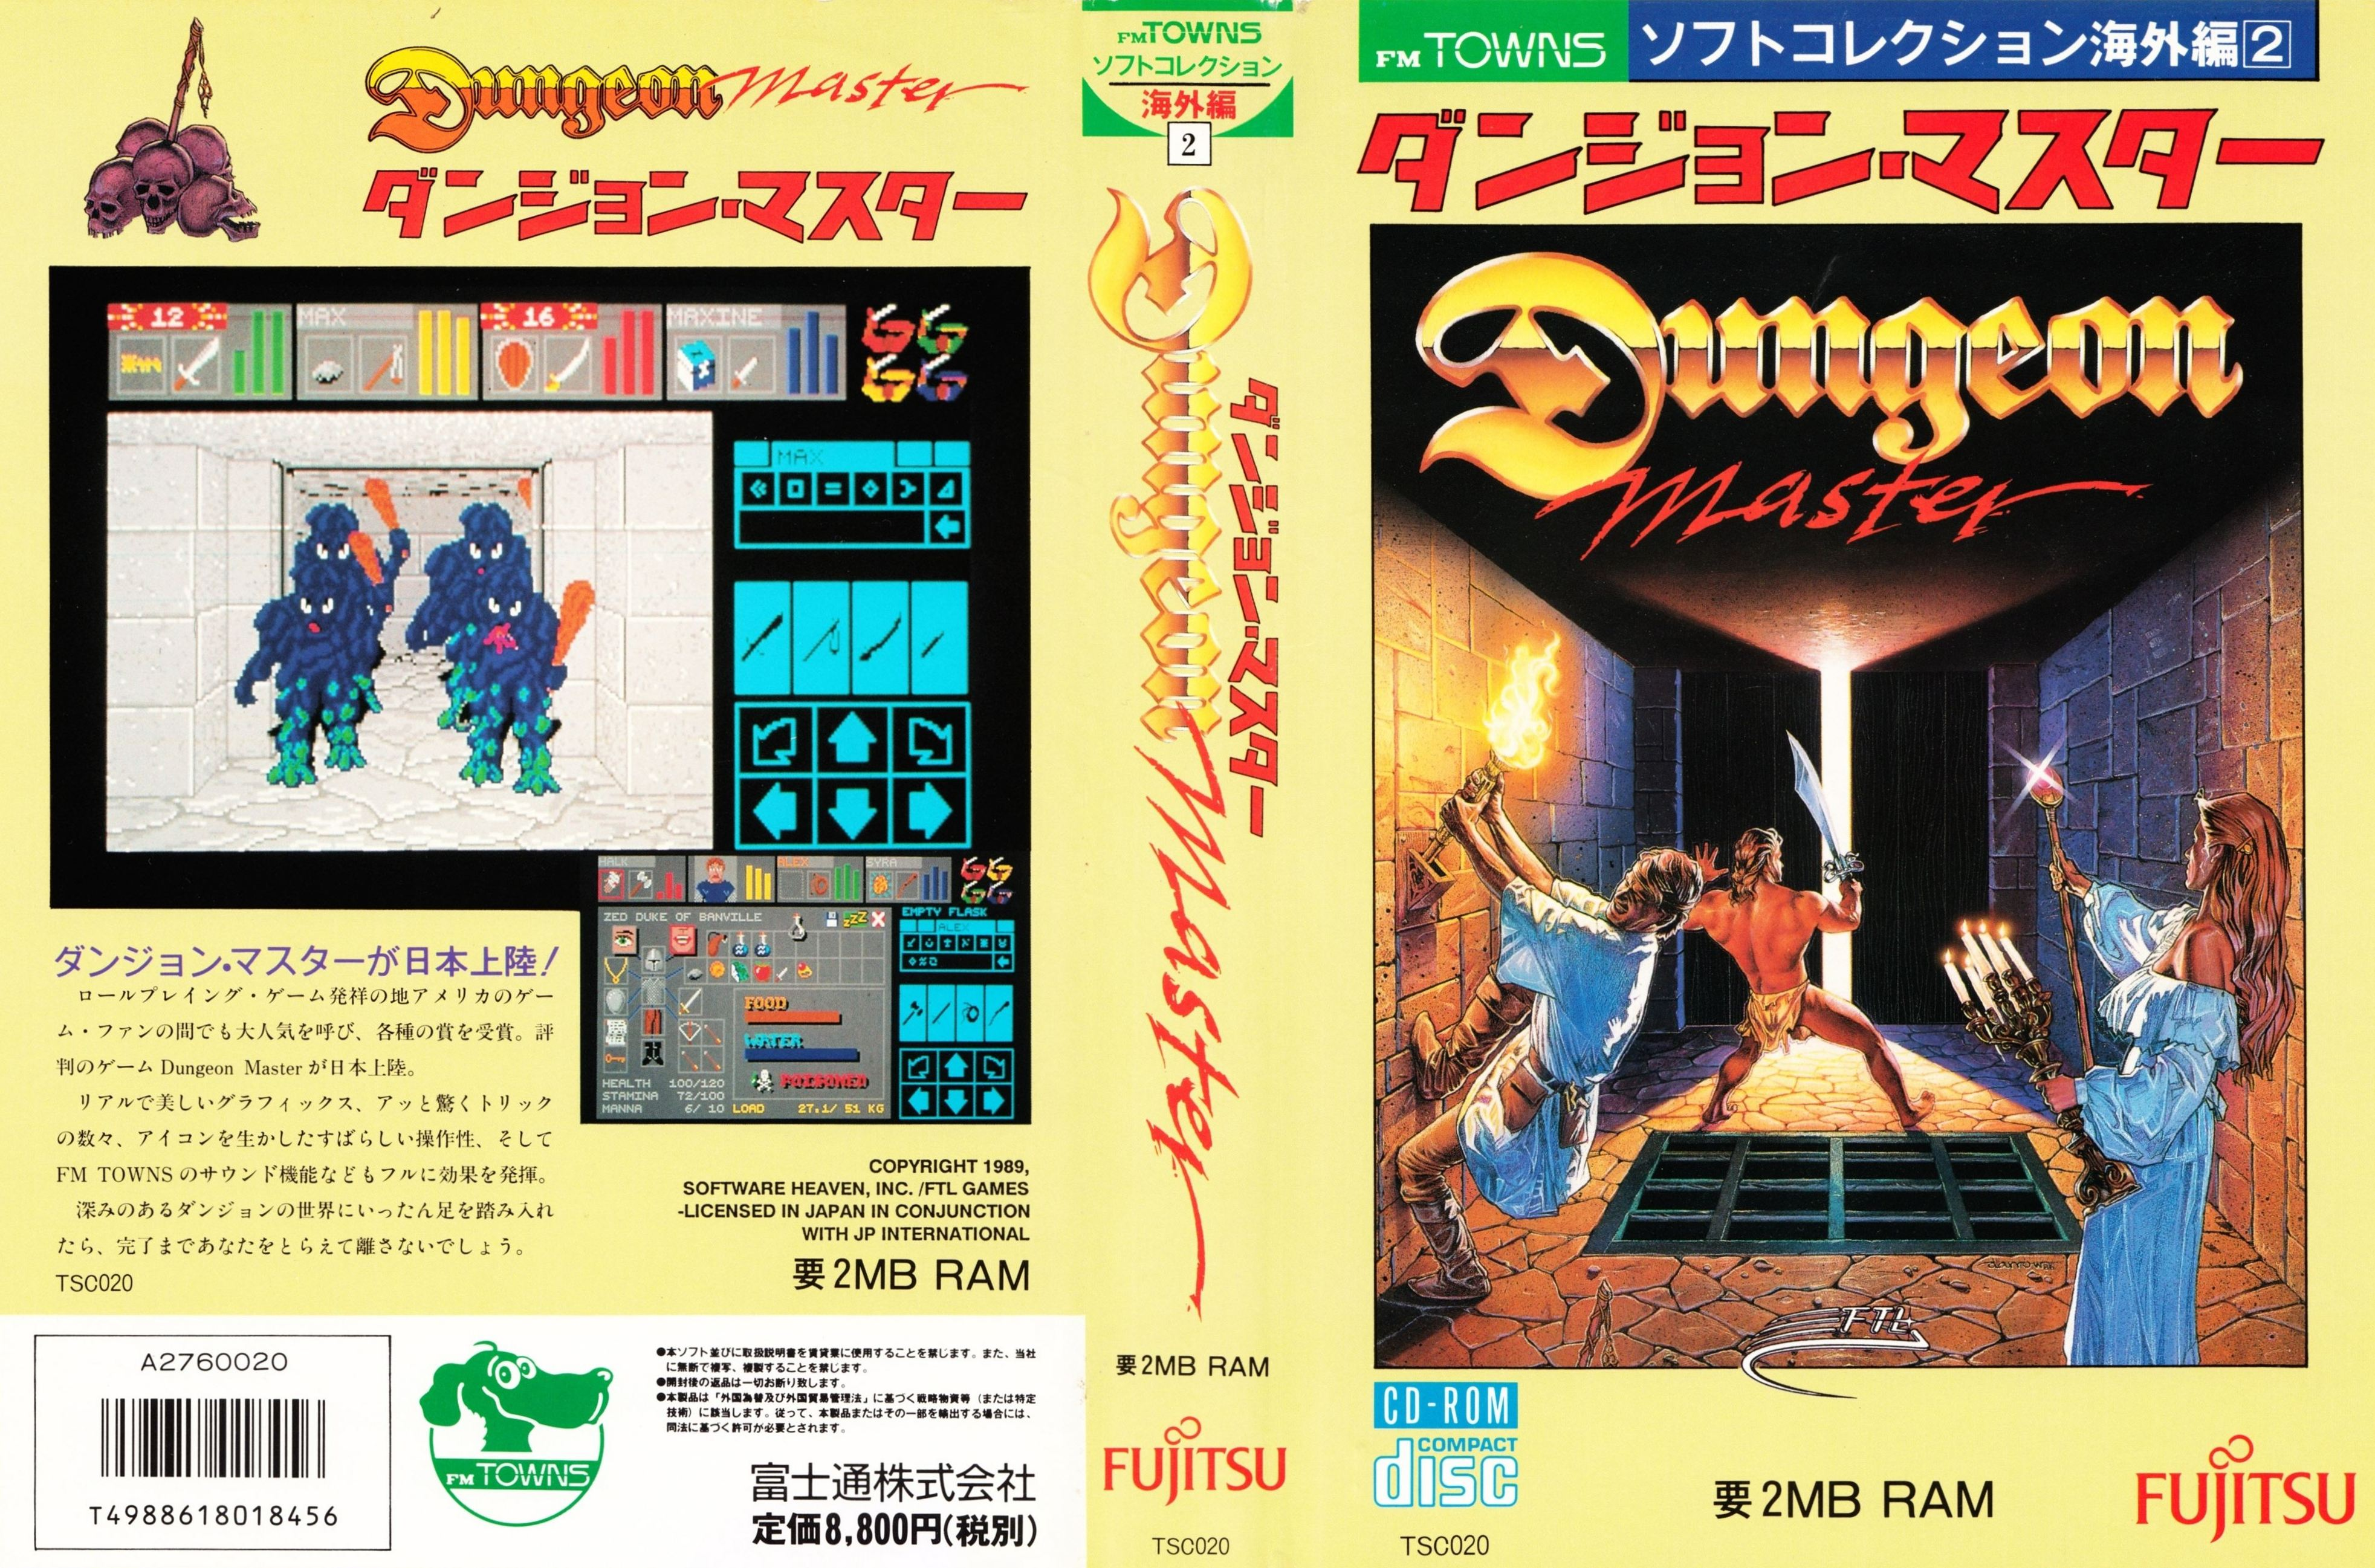 Game - Dungeon Master - JP - FM Towns - Cover - Front - Scan